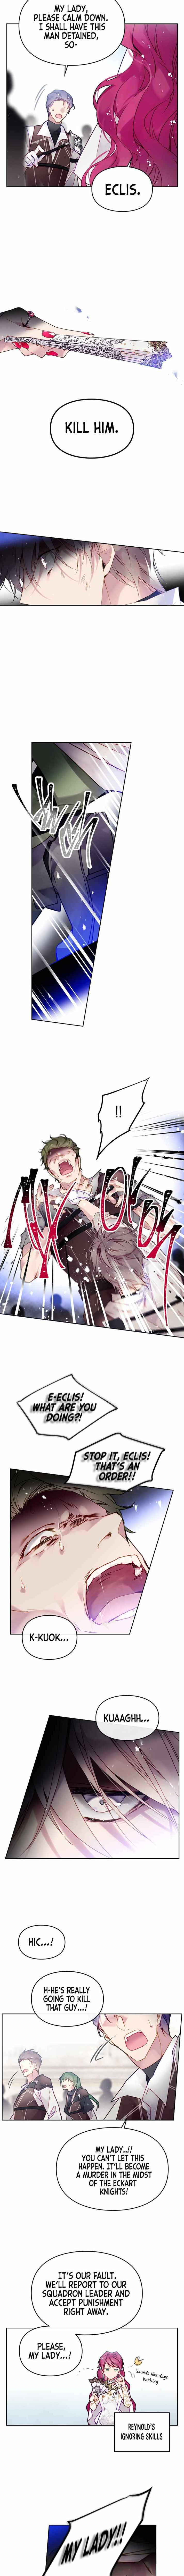 Death Is The Only Ending For The Villainess - chapter 46-eng-li